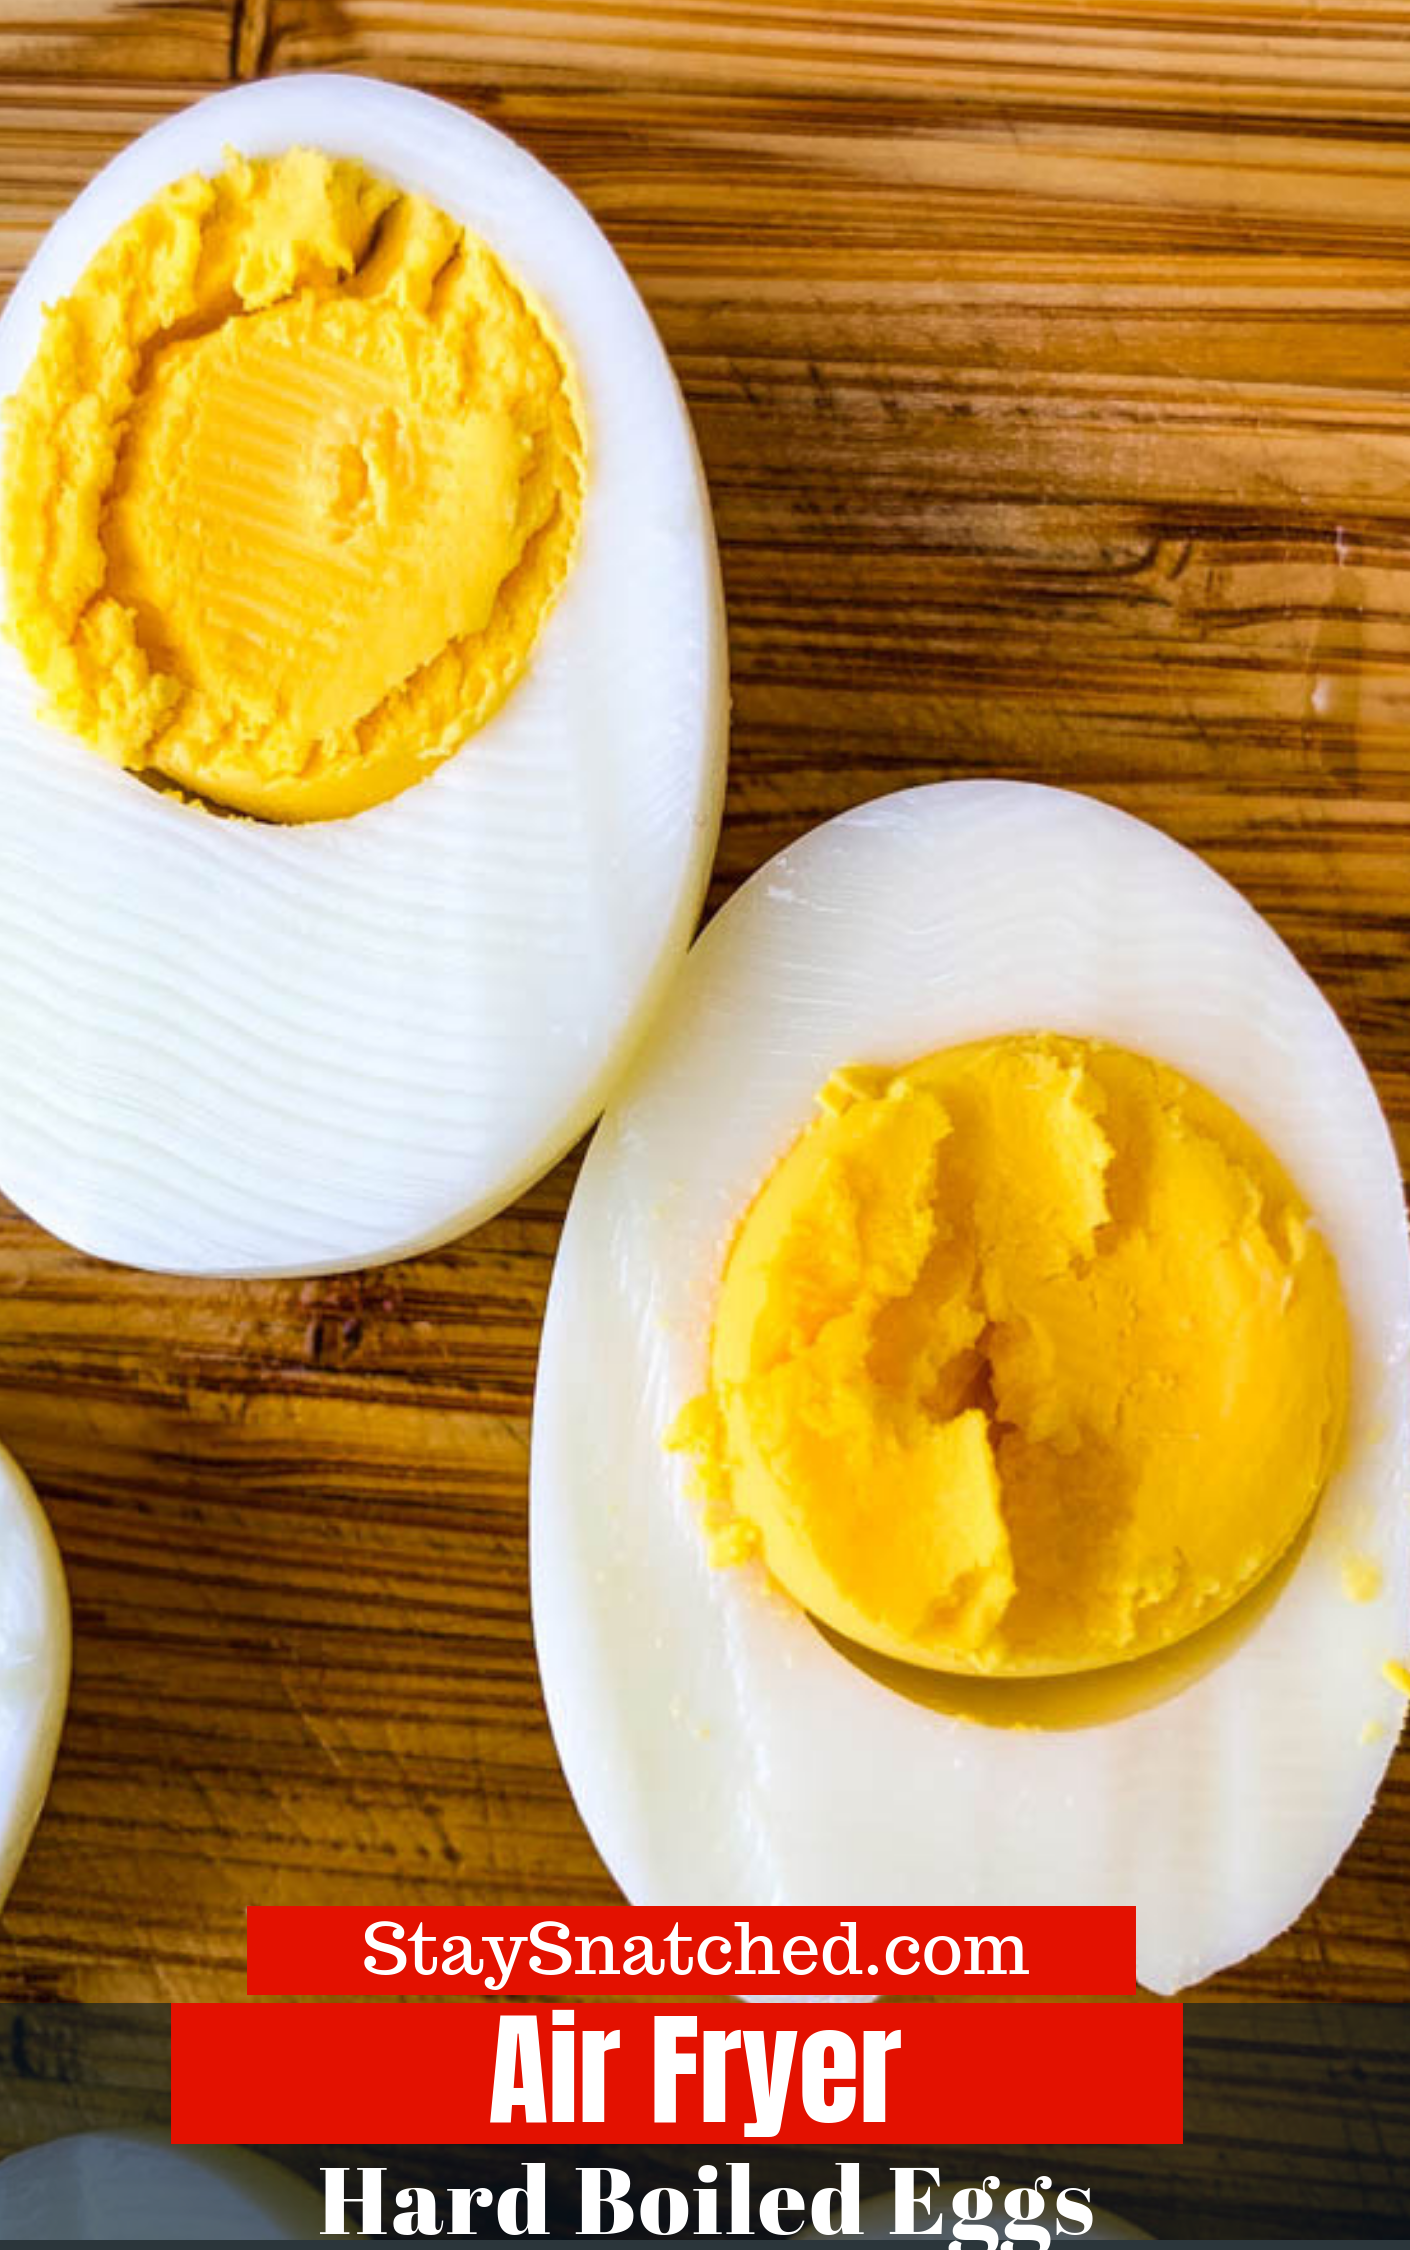 Easy Air Fryer Hard Boiled Eggs is a quick and easy to